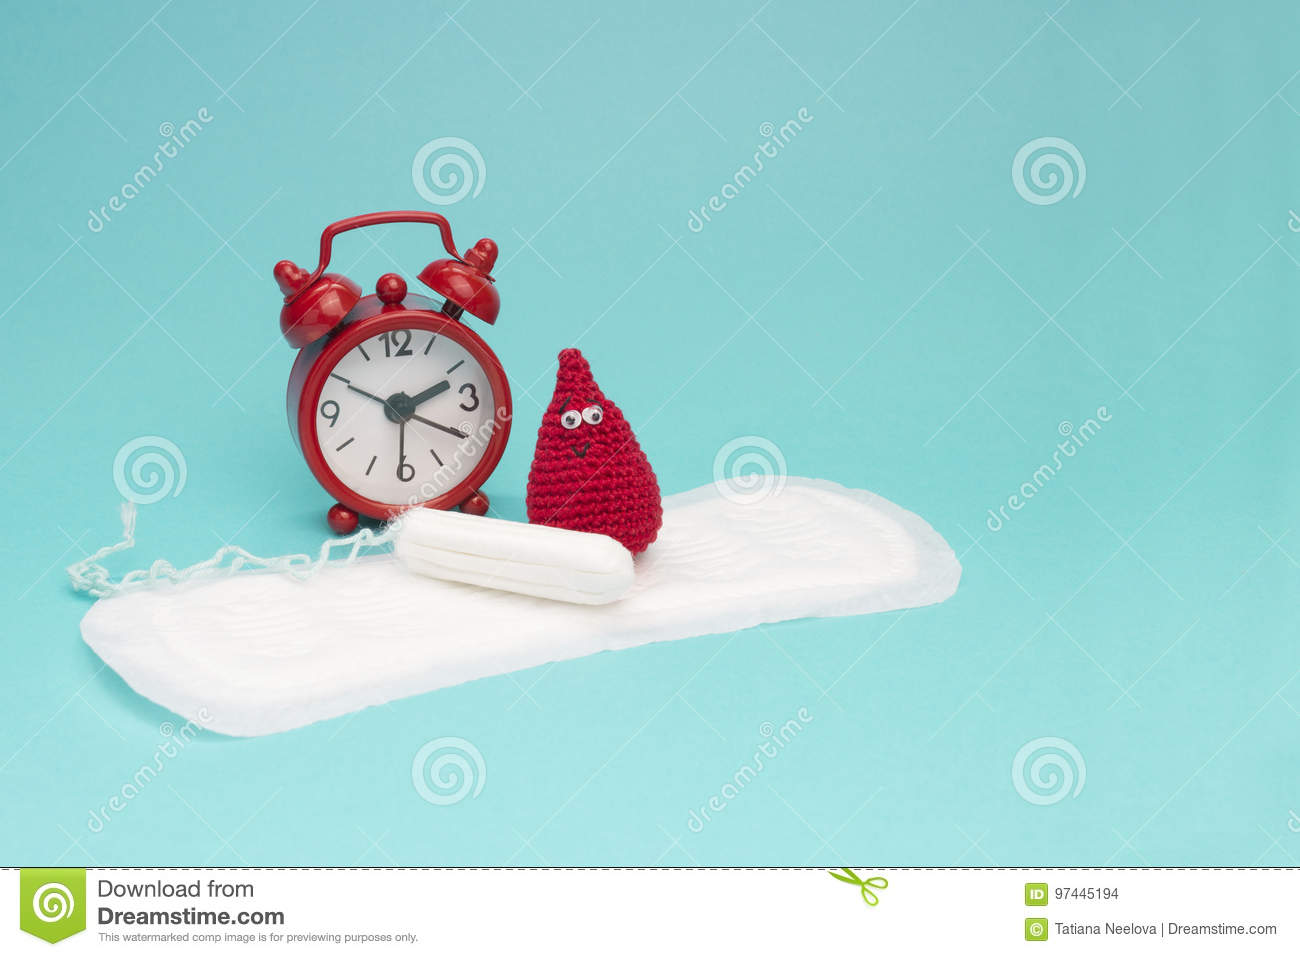 Red alarm clock, dreamy smile crochet blood drop, daily menstrual pad and tampon. Menstruation sanitary woman hygiene. Woman criti